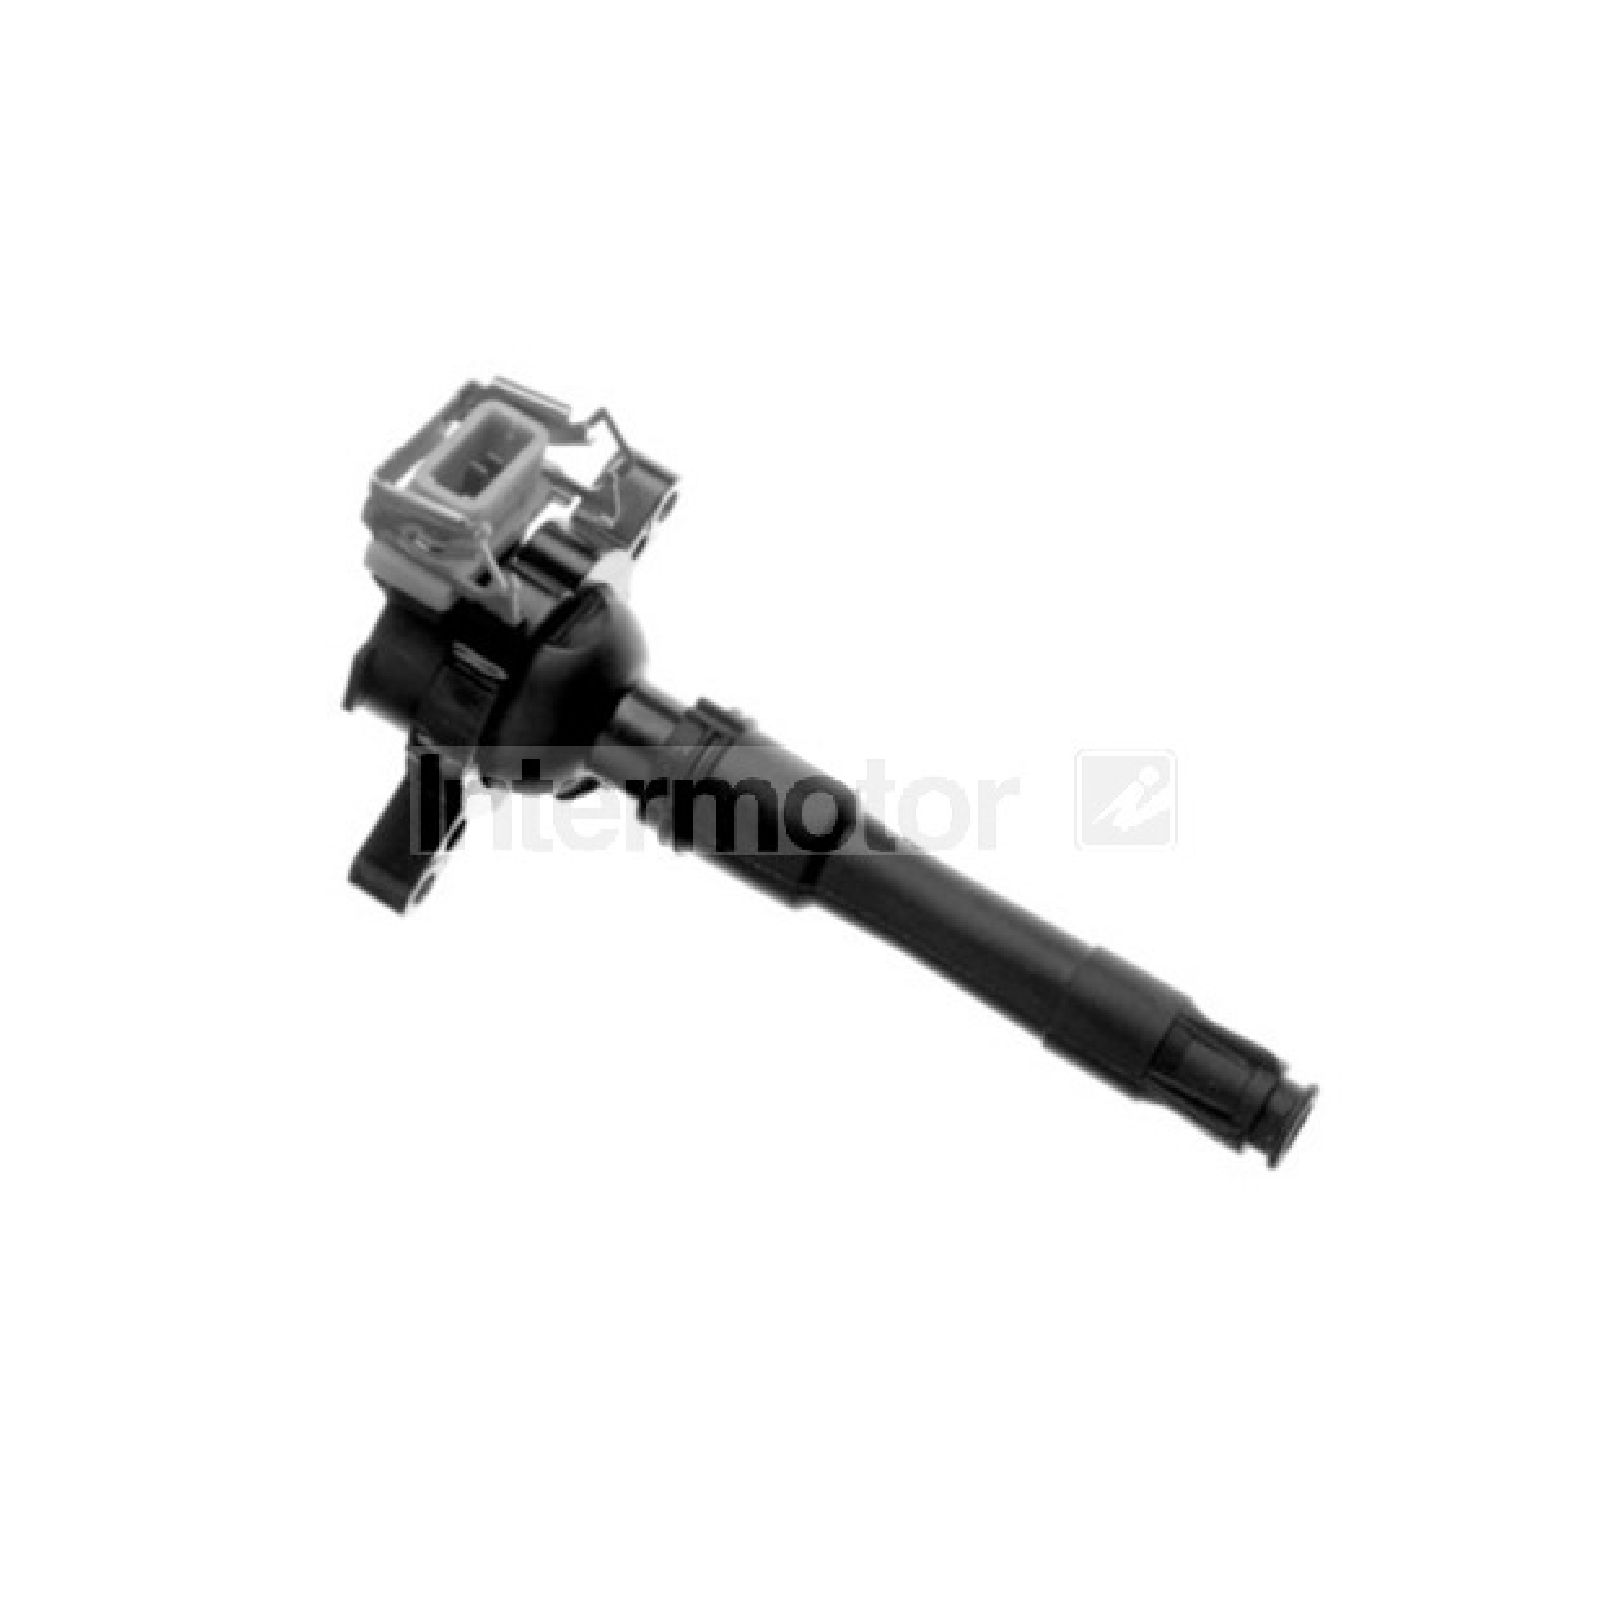 Land Rover Coil Cooling Partnumber Qgc500080: Variant4 Intermotor Ignition Coil Pack Engine Genuine OE